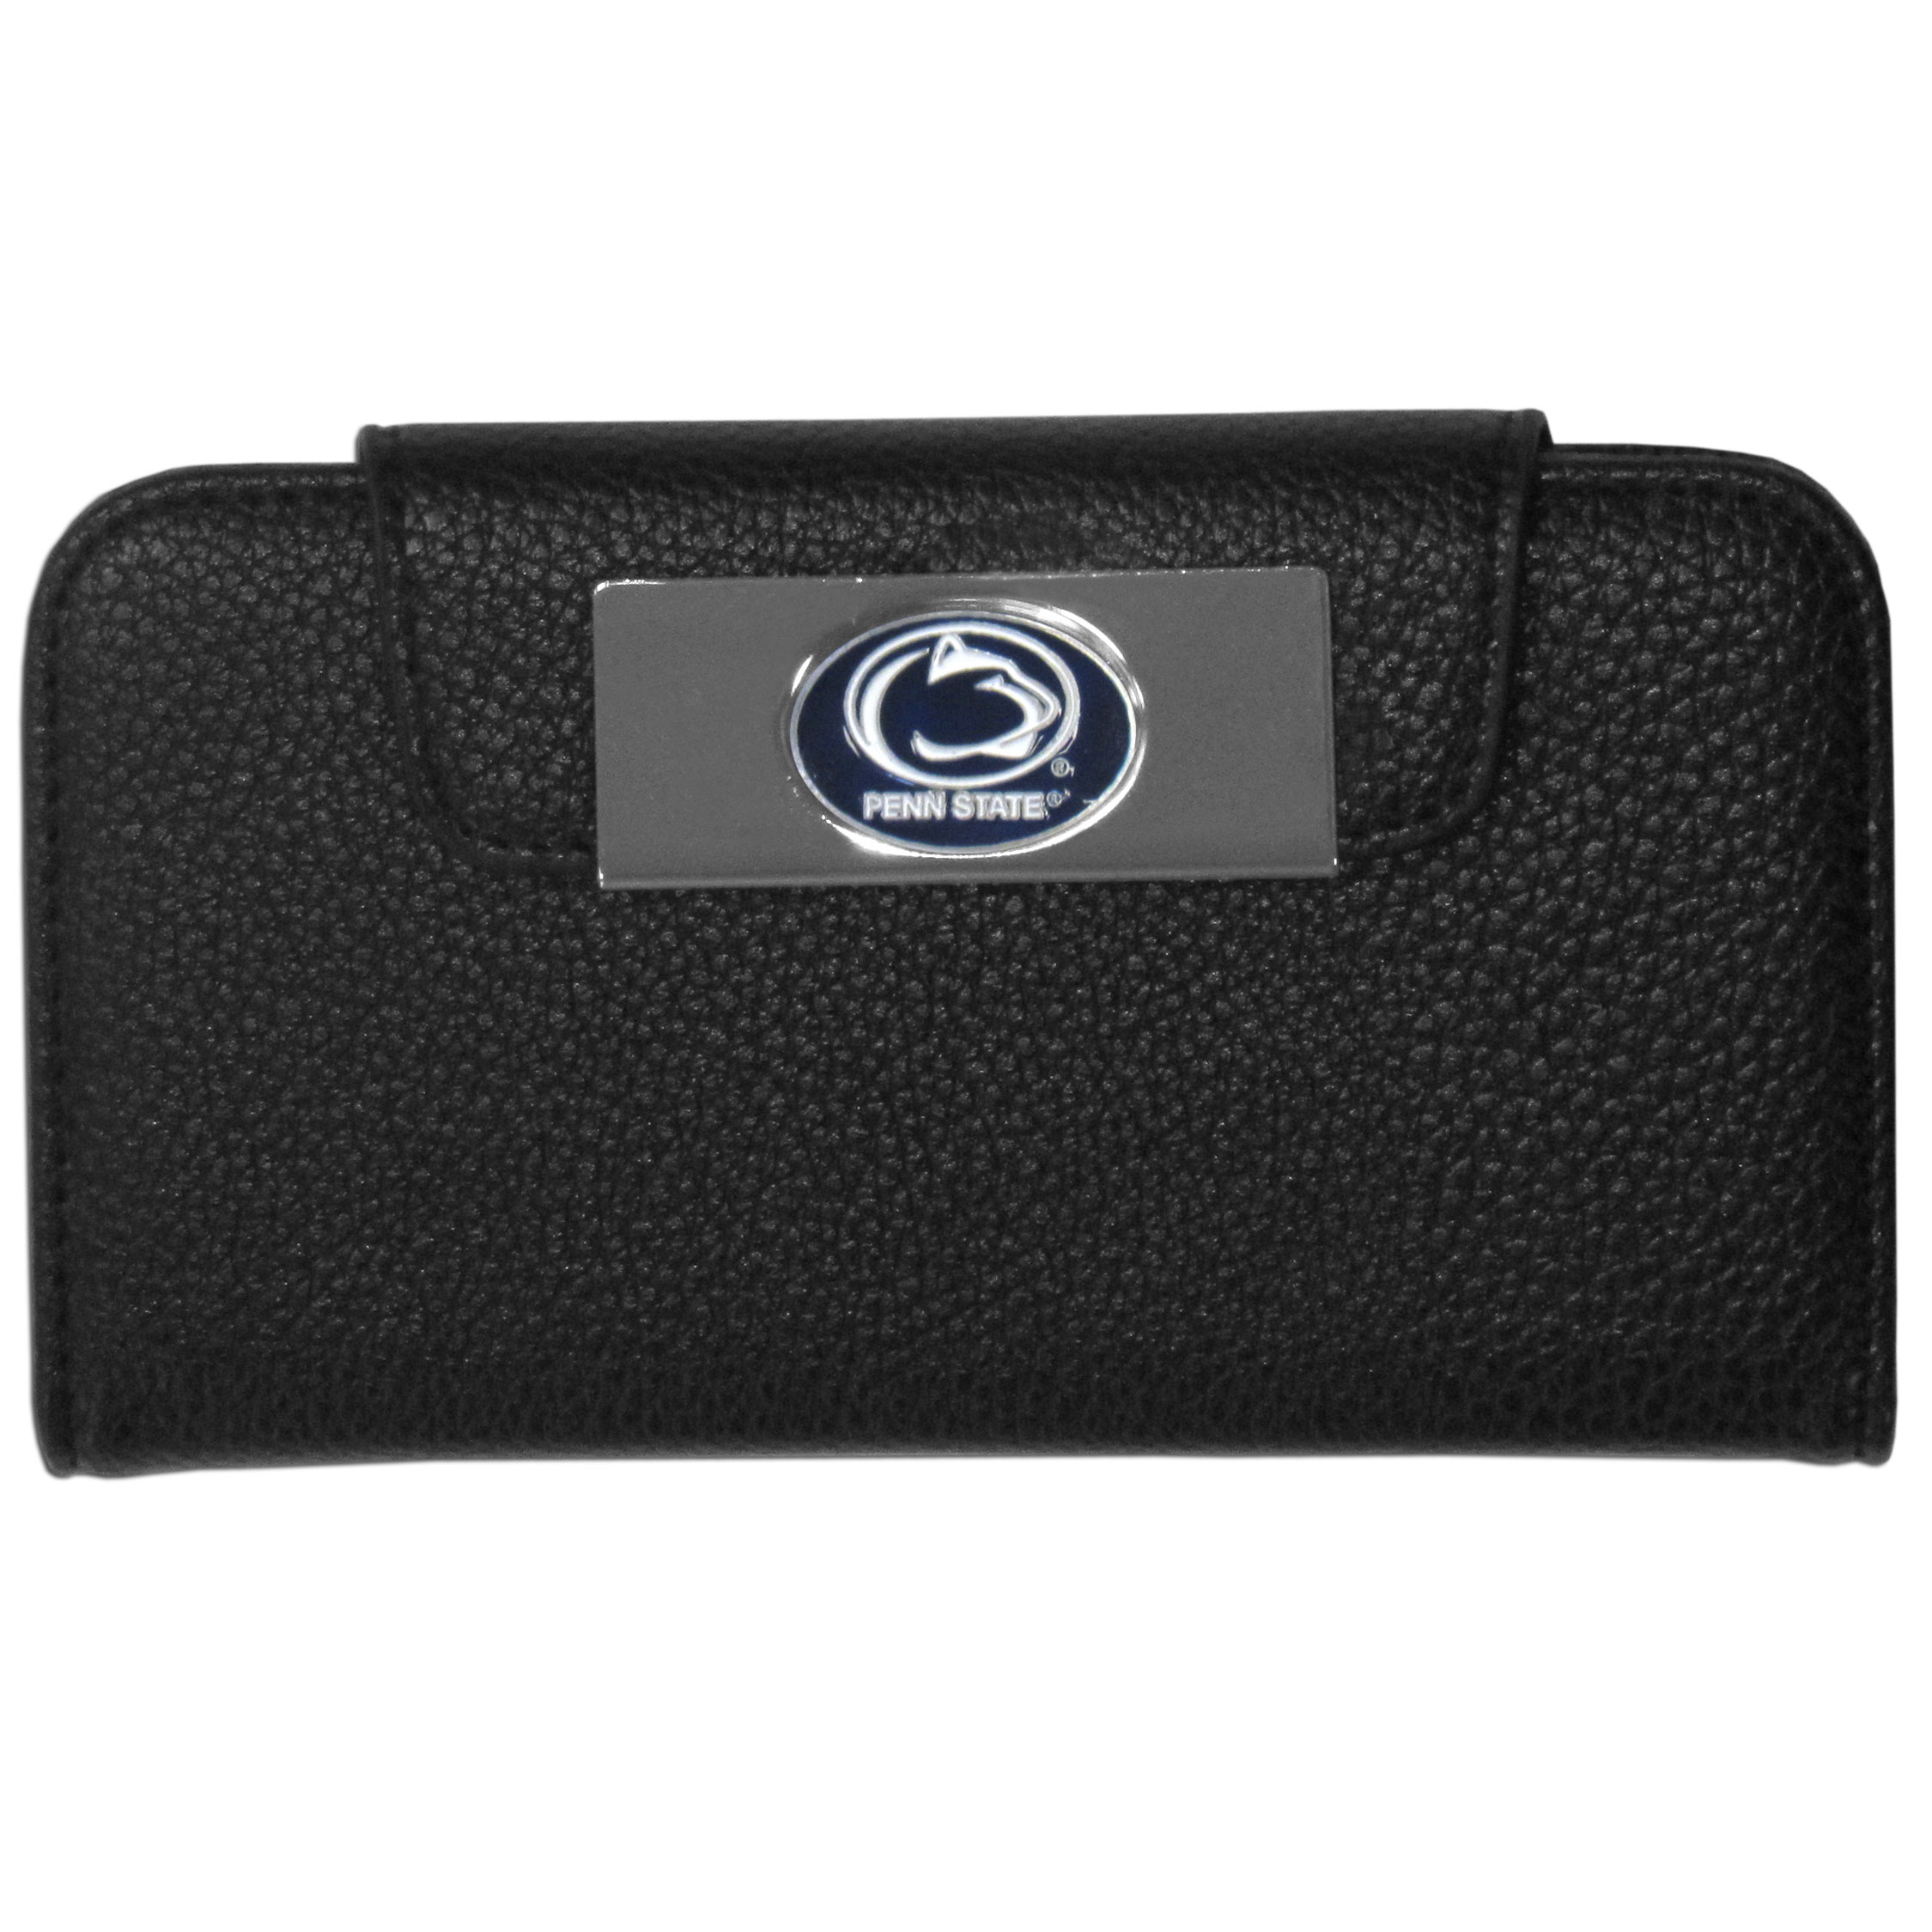 Penn St. Nittany Lions Samsung Galaxy S4 Wallet Case - This new & wildly popular case is ideal for those who like to travel light! The stylish case has an inner hard shell that securely holds your phone while allowing complete access to the phone's functionality. The flip cover has slots for credit cards, business cards and identification. The magnetic flip cover has a metal Penn St. Nittany Lions emblem on a high polish chrome backing. Fits the Samsung Galaxy S4